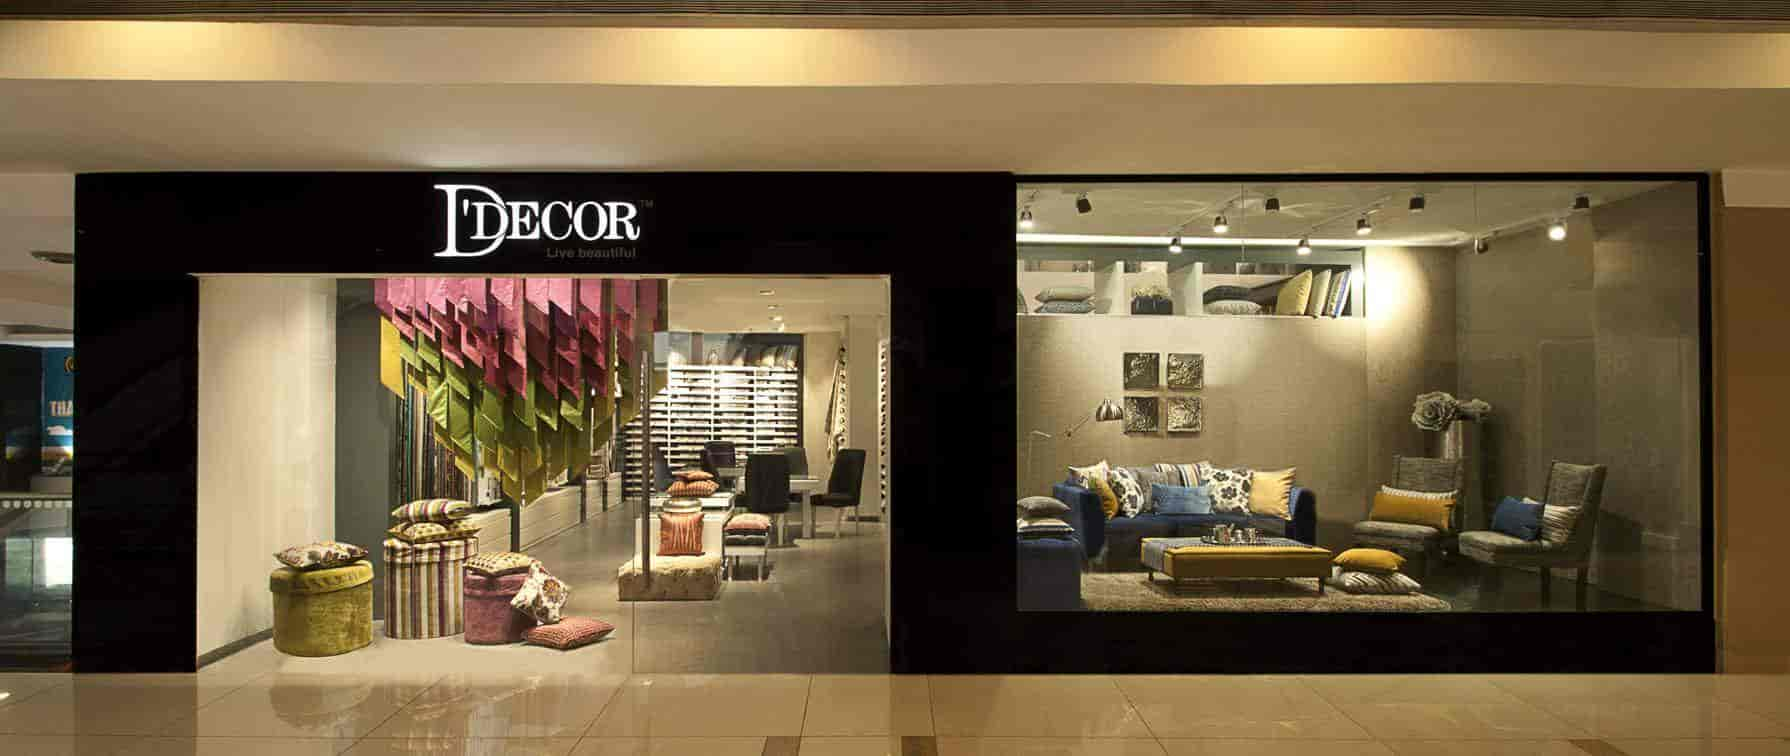 The Ddecor Store Inorbit Mall Photos Malad West Mumbai Pictures